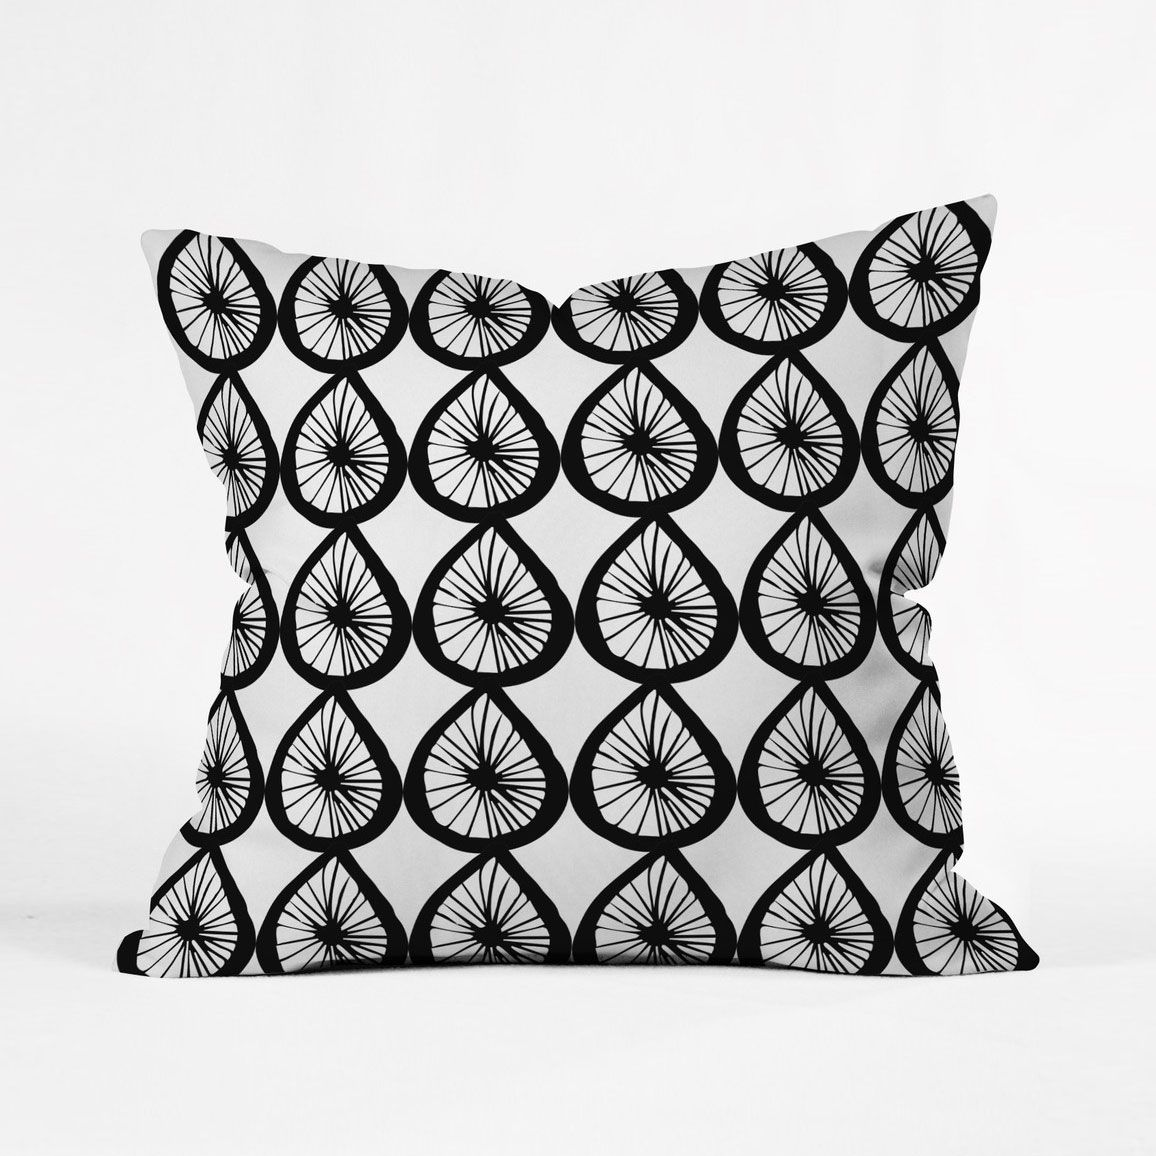 The playful and fun pattern on the wiel pillow cover is a fitting